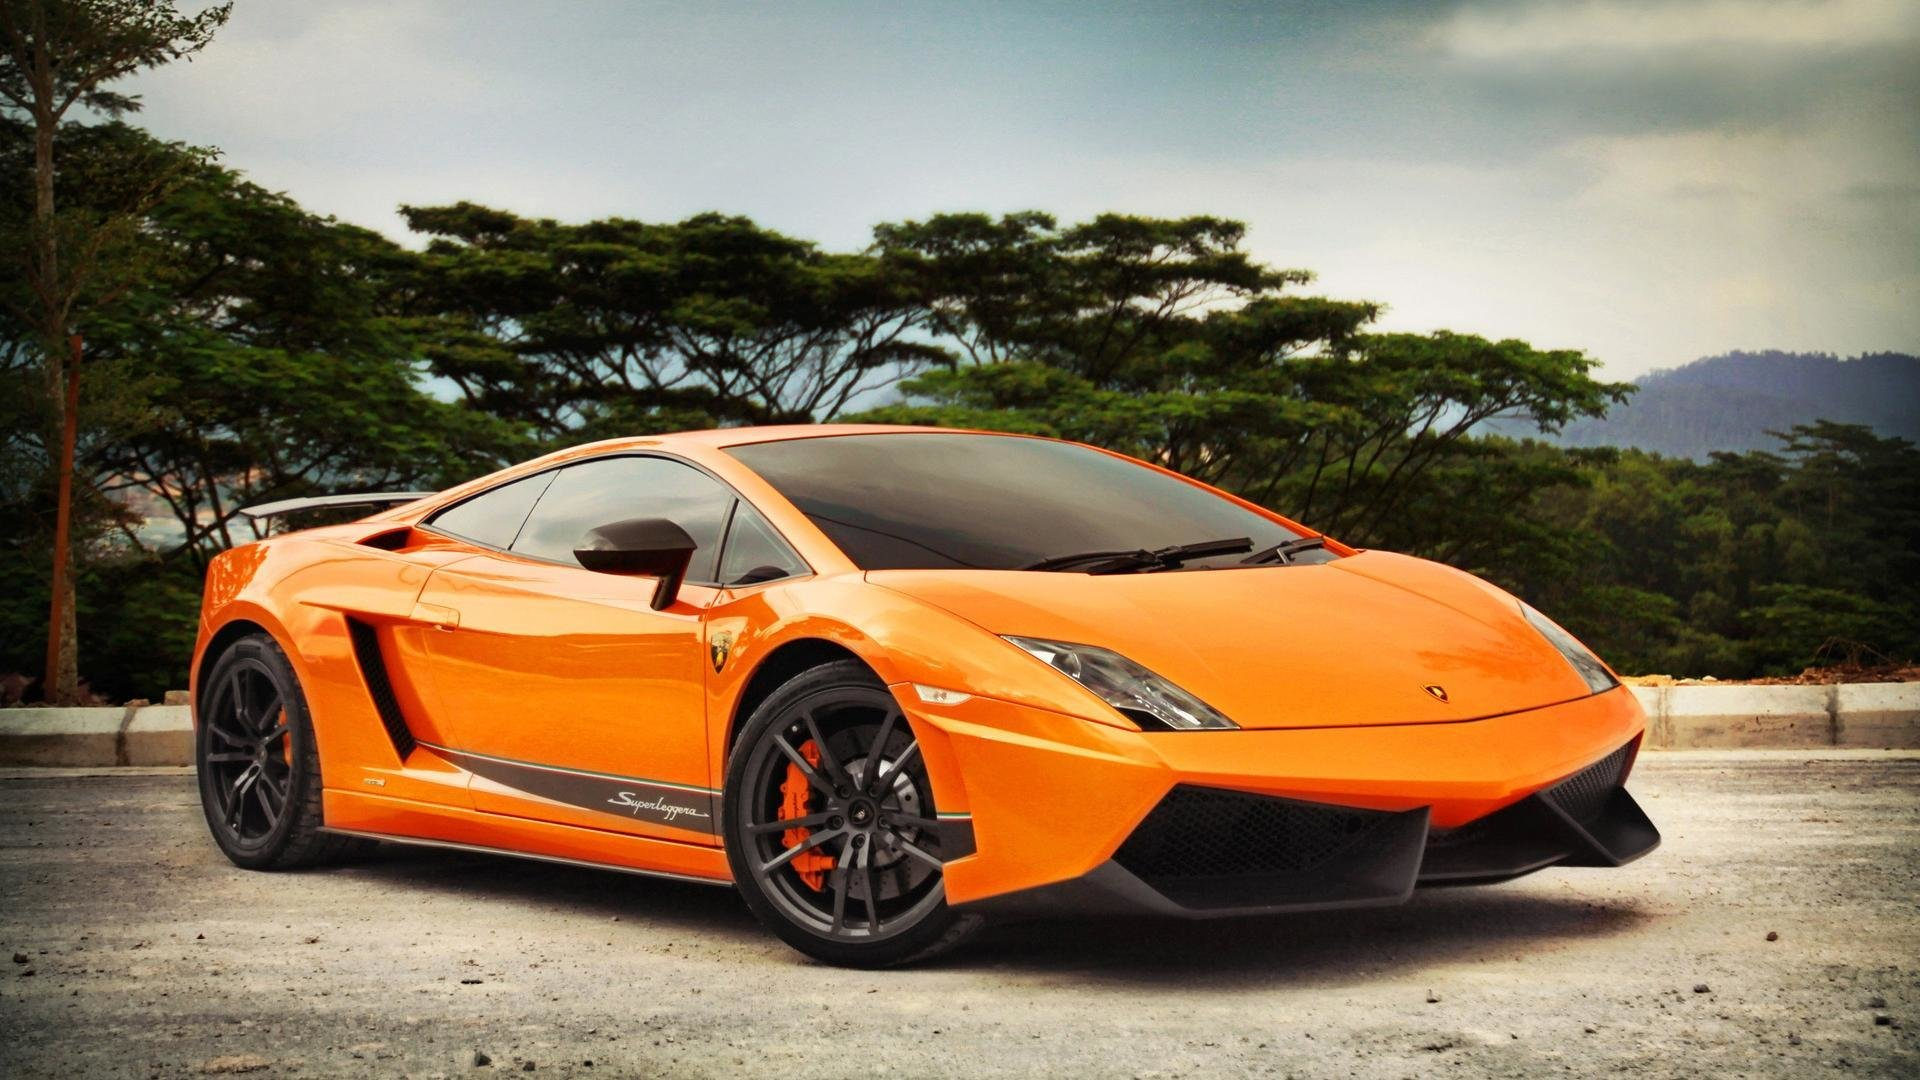 Latest 25 New Sports Cars Wallpapers Free Download